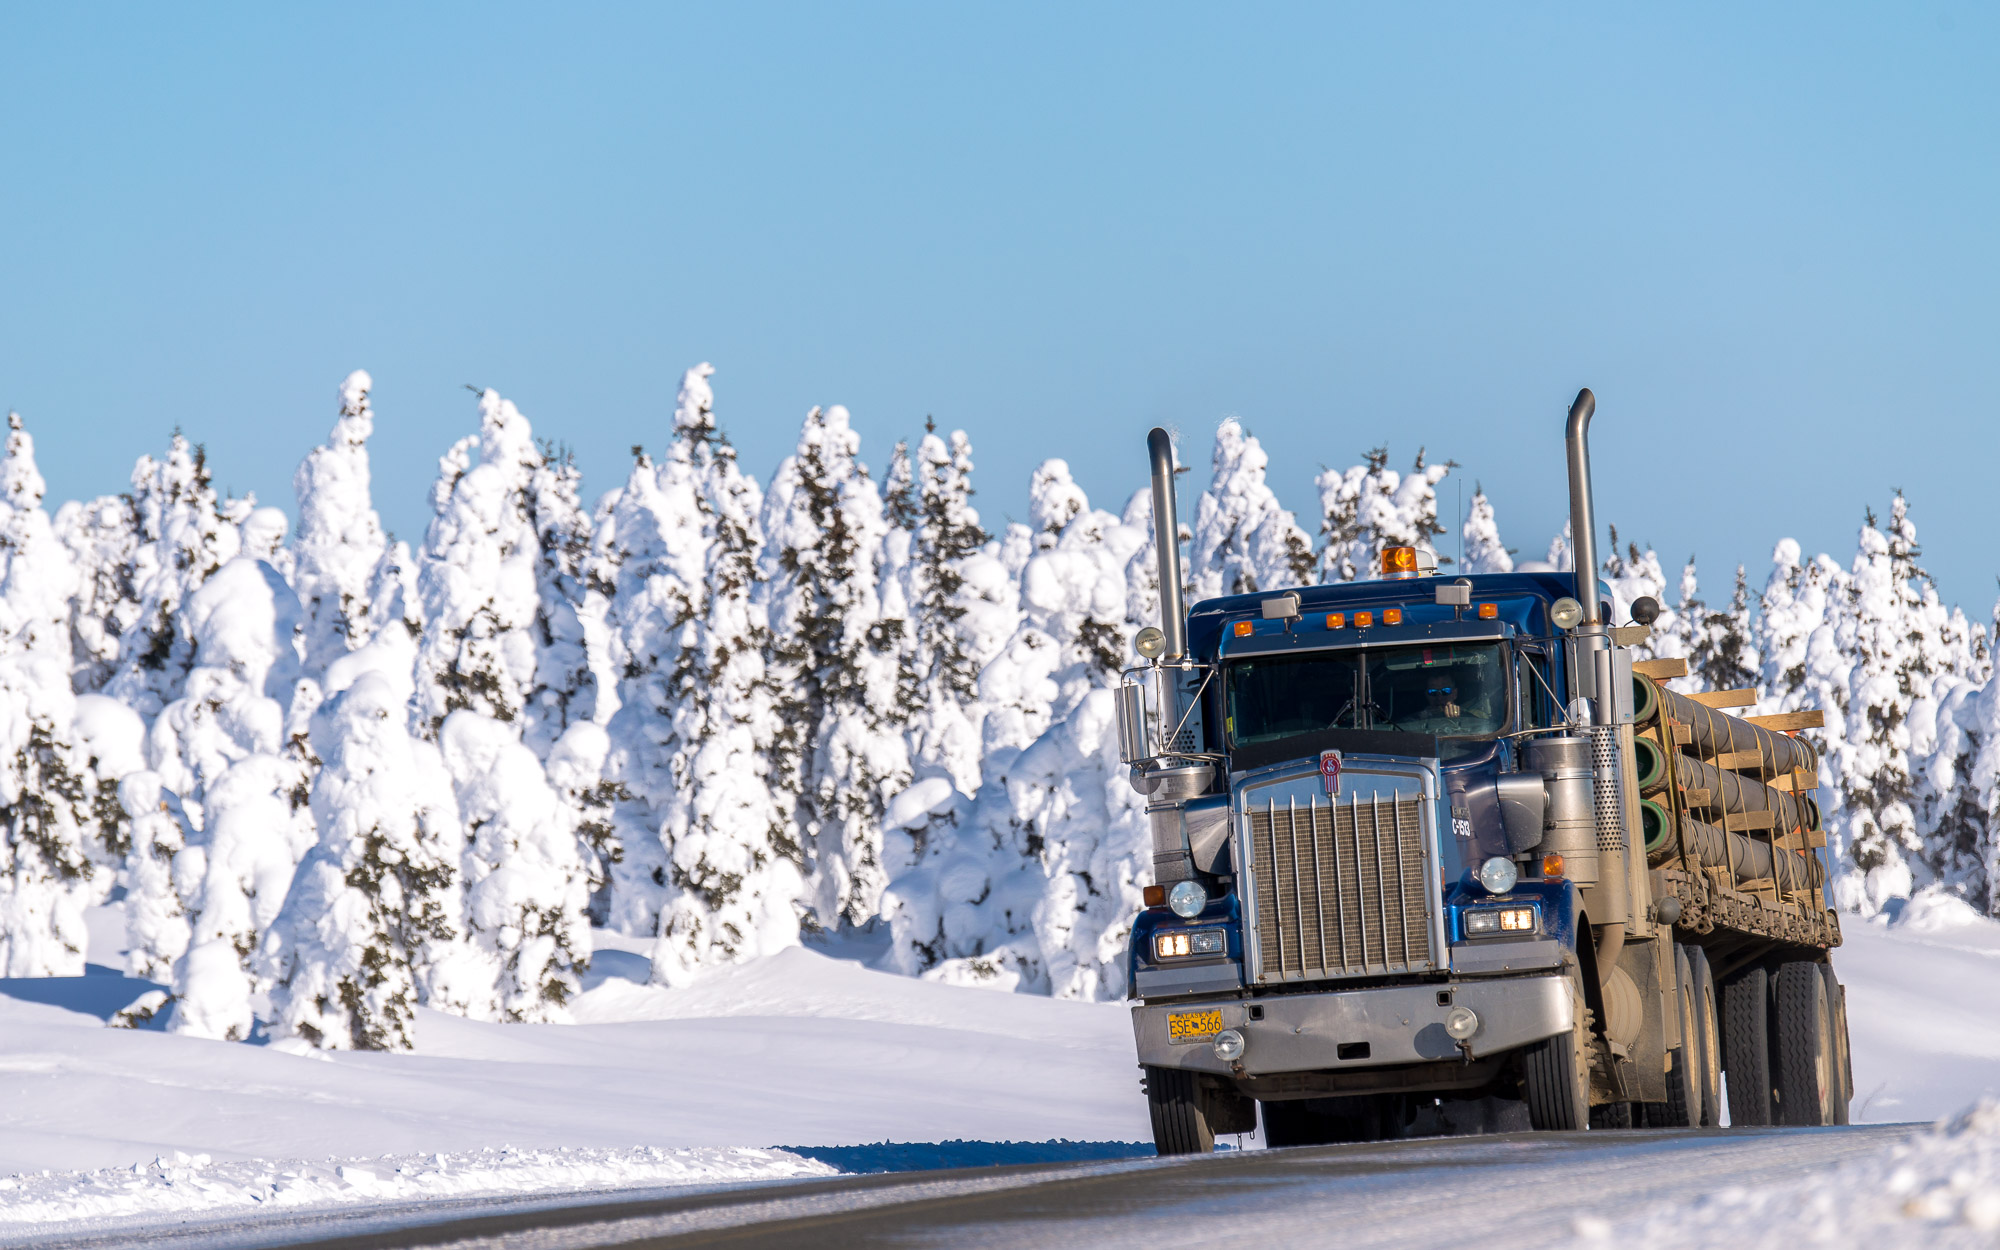 Truck and snow-covered trees - Dalton Highway, Alaska